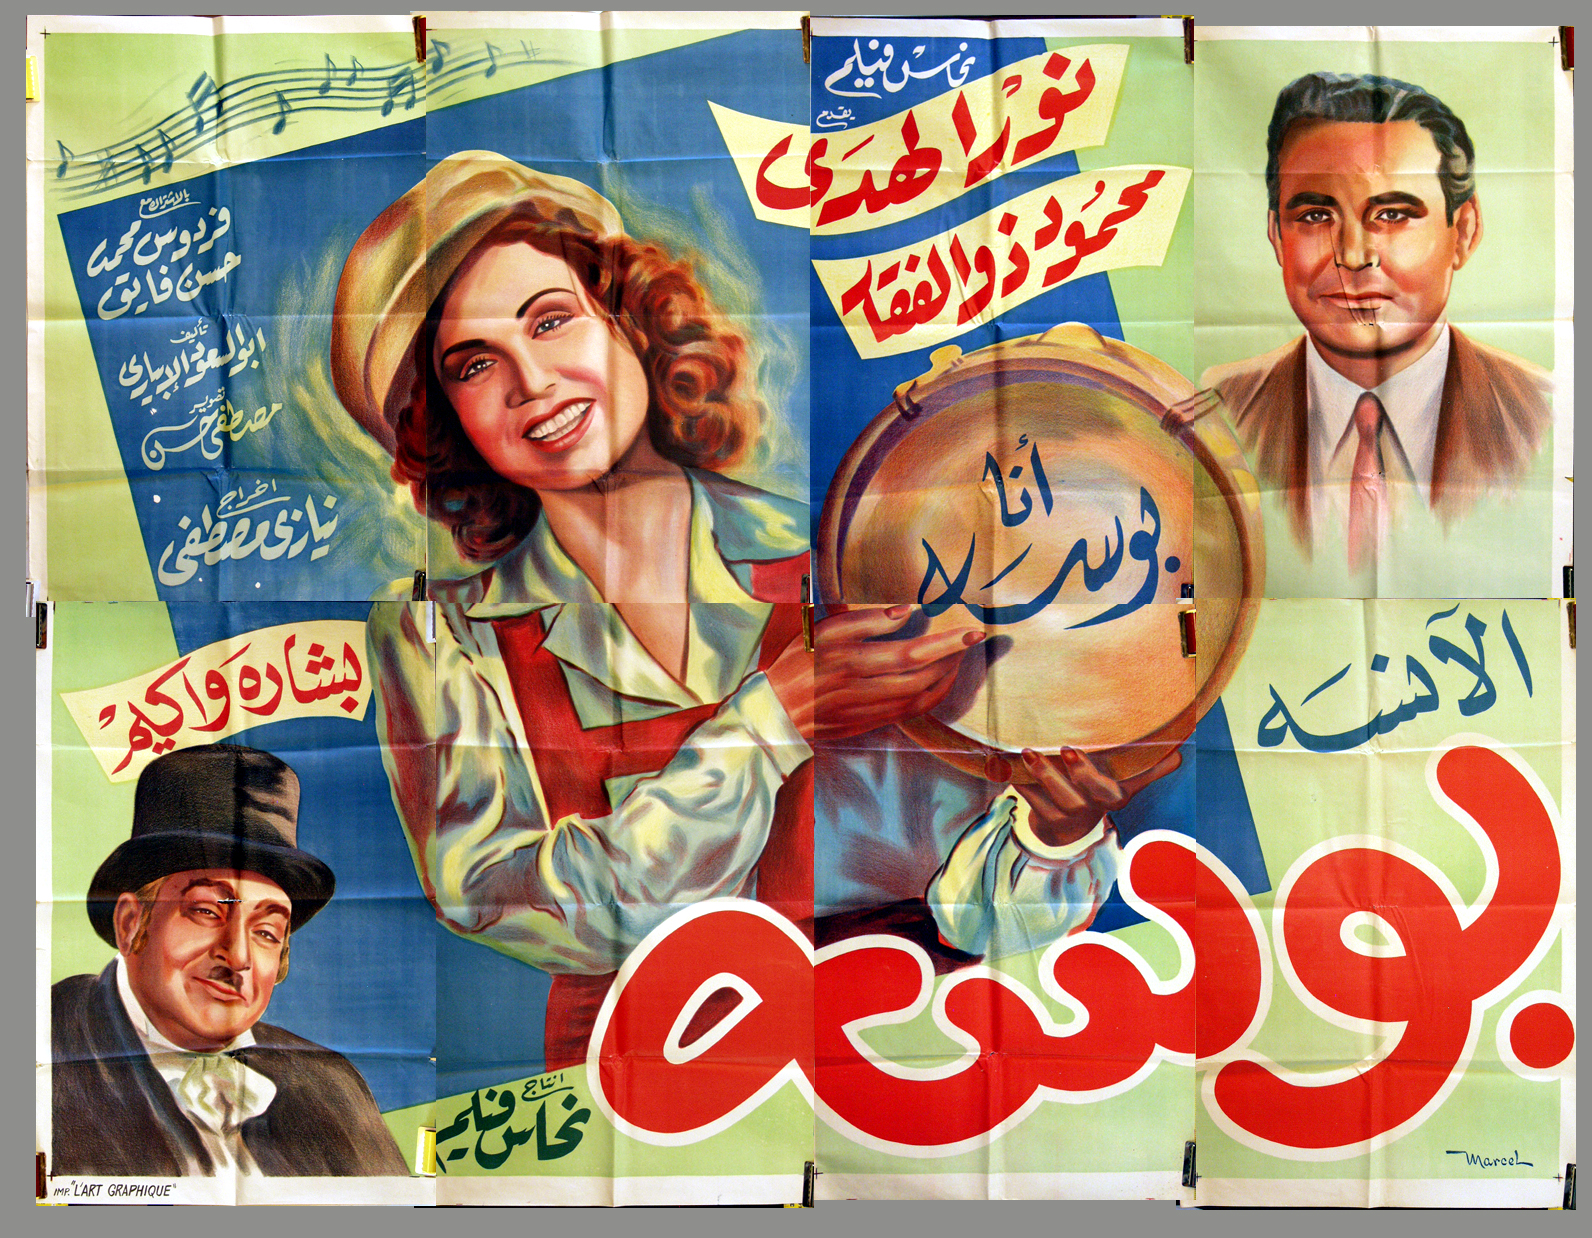 Pictured is an Egyptian promotional poster for the 1945 Niazi Mostafa film Miss Bossy starring Nour Al Hoda.